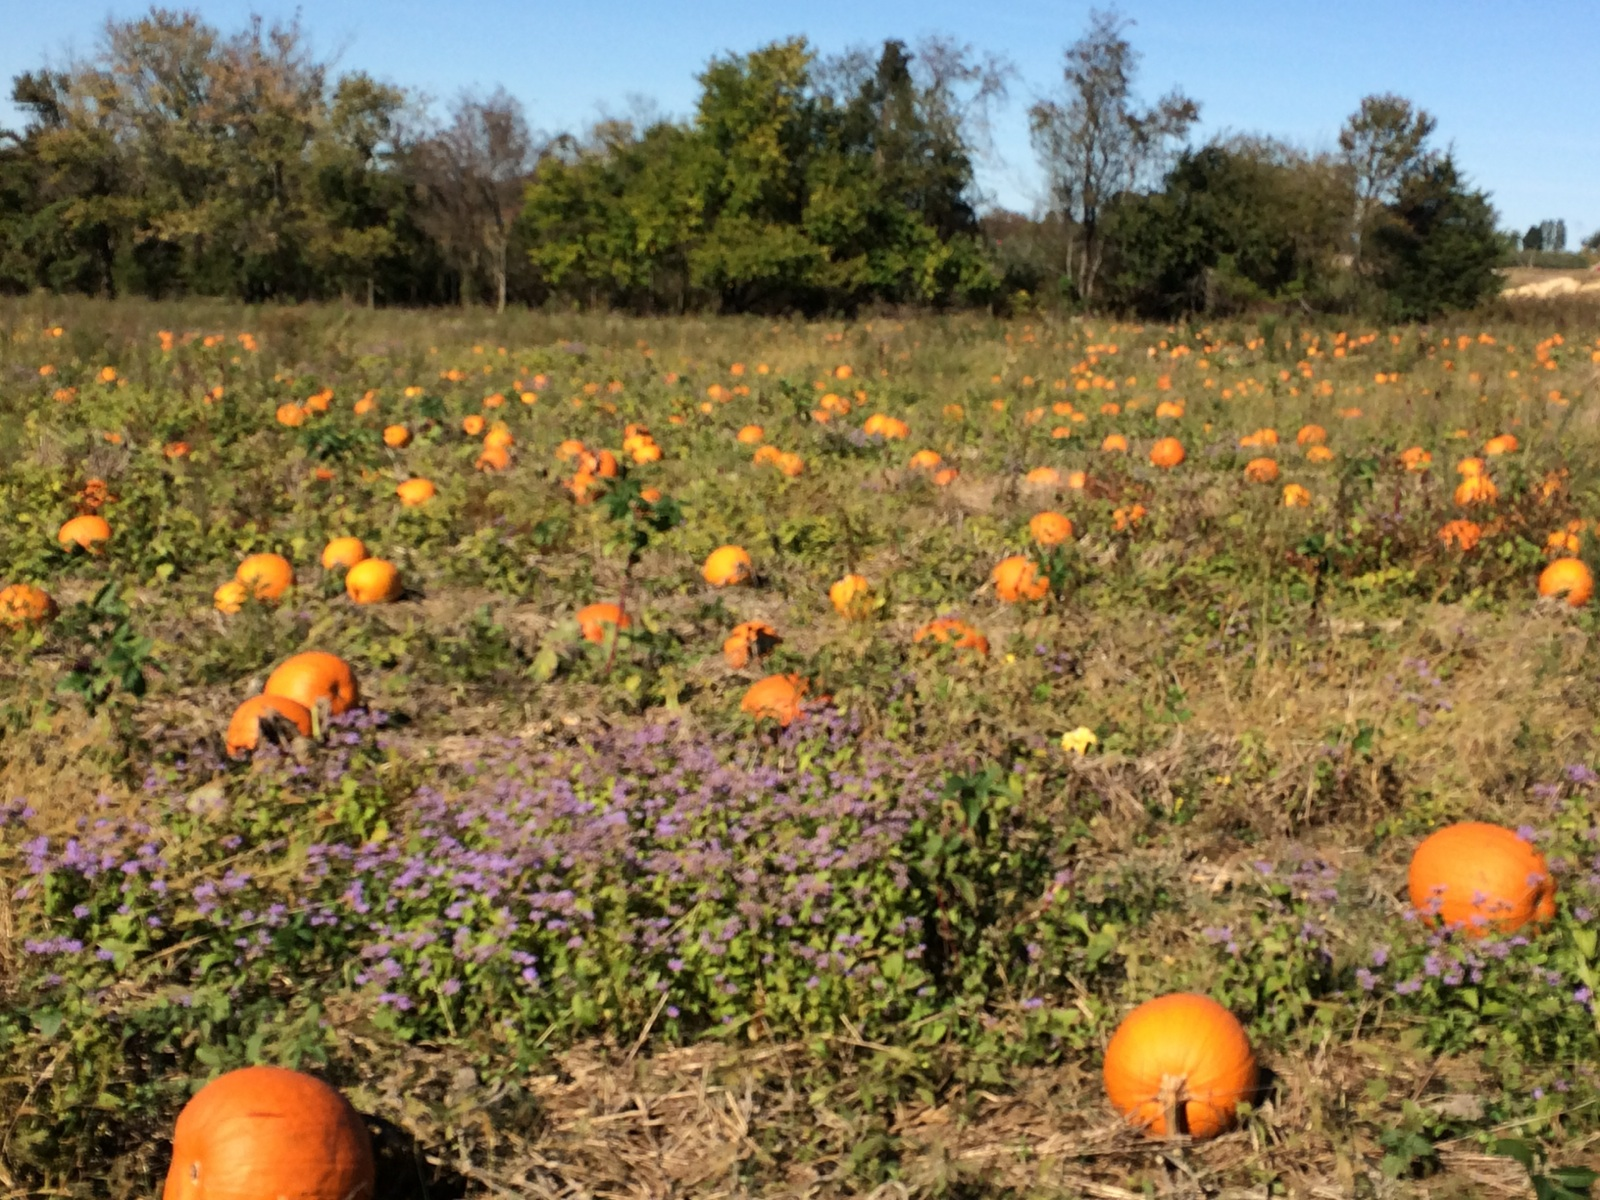 Pumpkin patch at Homestead Farm (Photo: Mackenzie Keller)